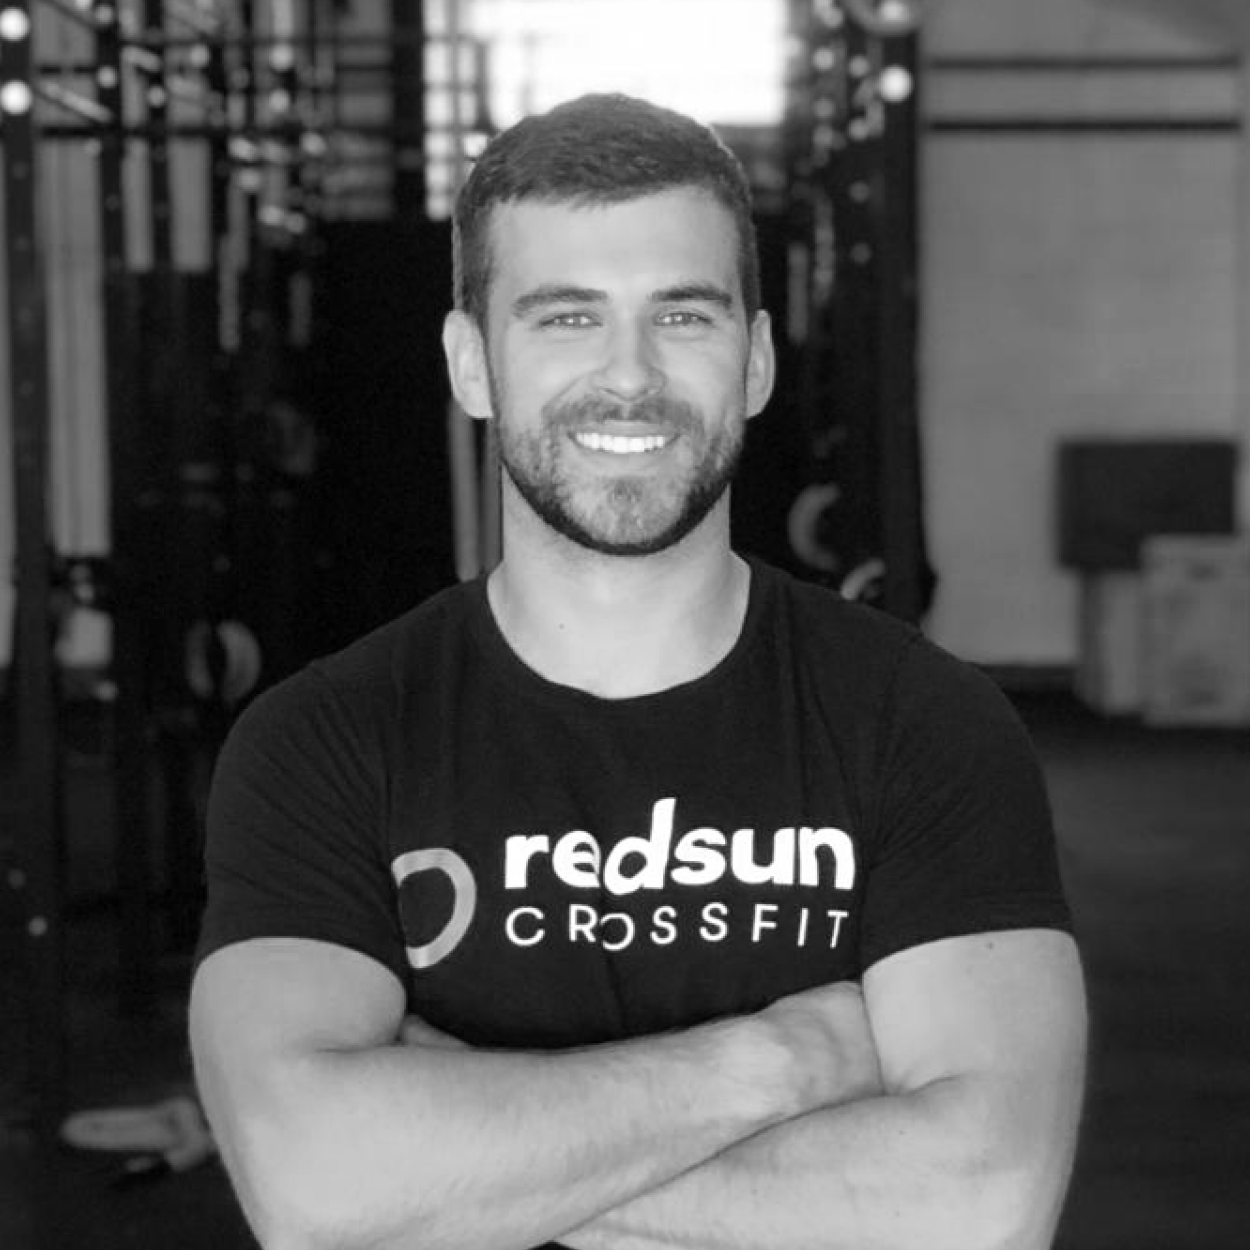 Ben   has been coaching CrossFit since 2013 after leaving behind the corporate world and desk jobs and never looking back. He currently holds a CrossFit Level 3 as well as a number of additional speciality courses. He has a true passion for fitness and this has lead him through multiple Head Coach roles to his current role now as an Owner/Coach.  Grab him to chat about anything fitness or motorcycles when you see him!